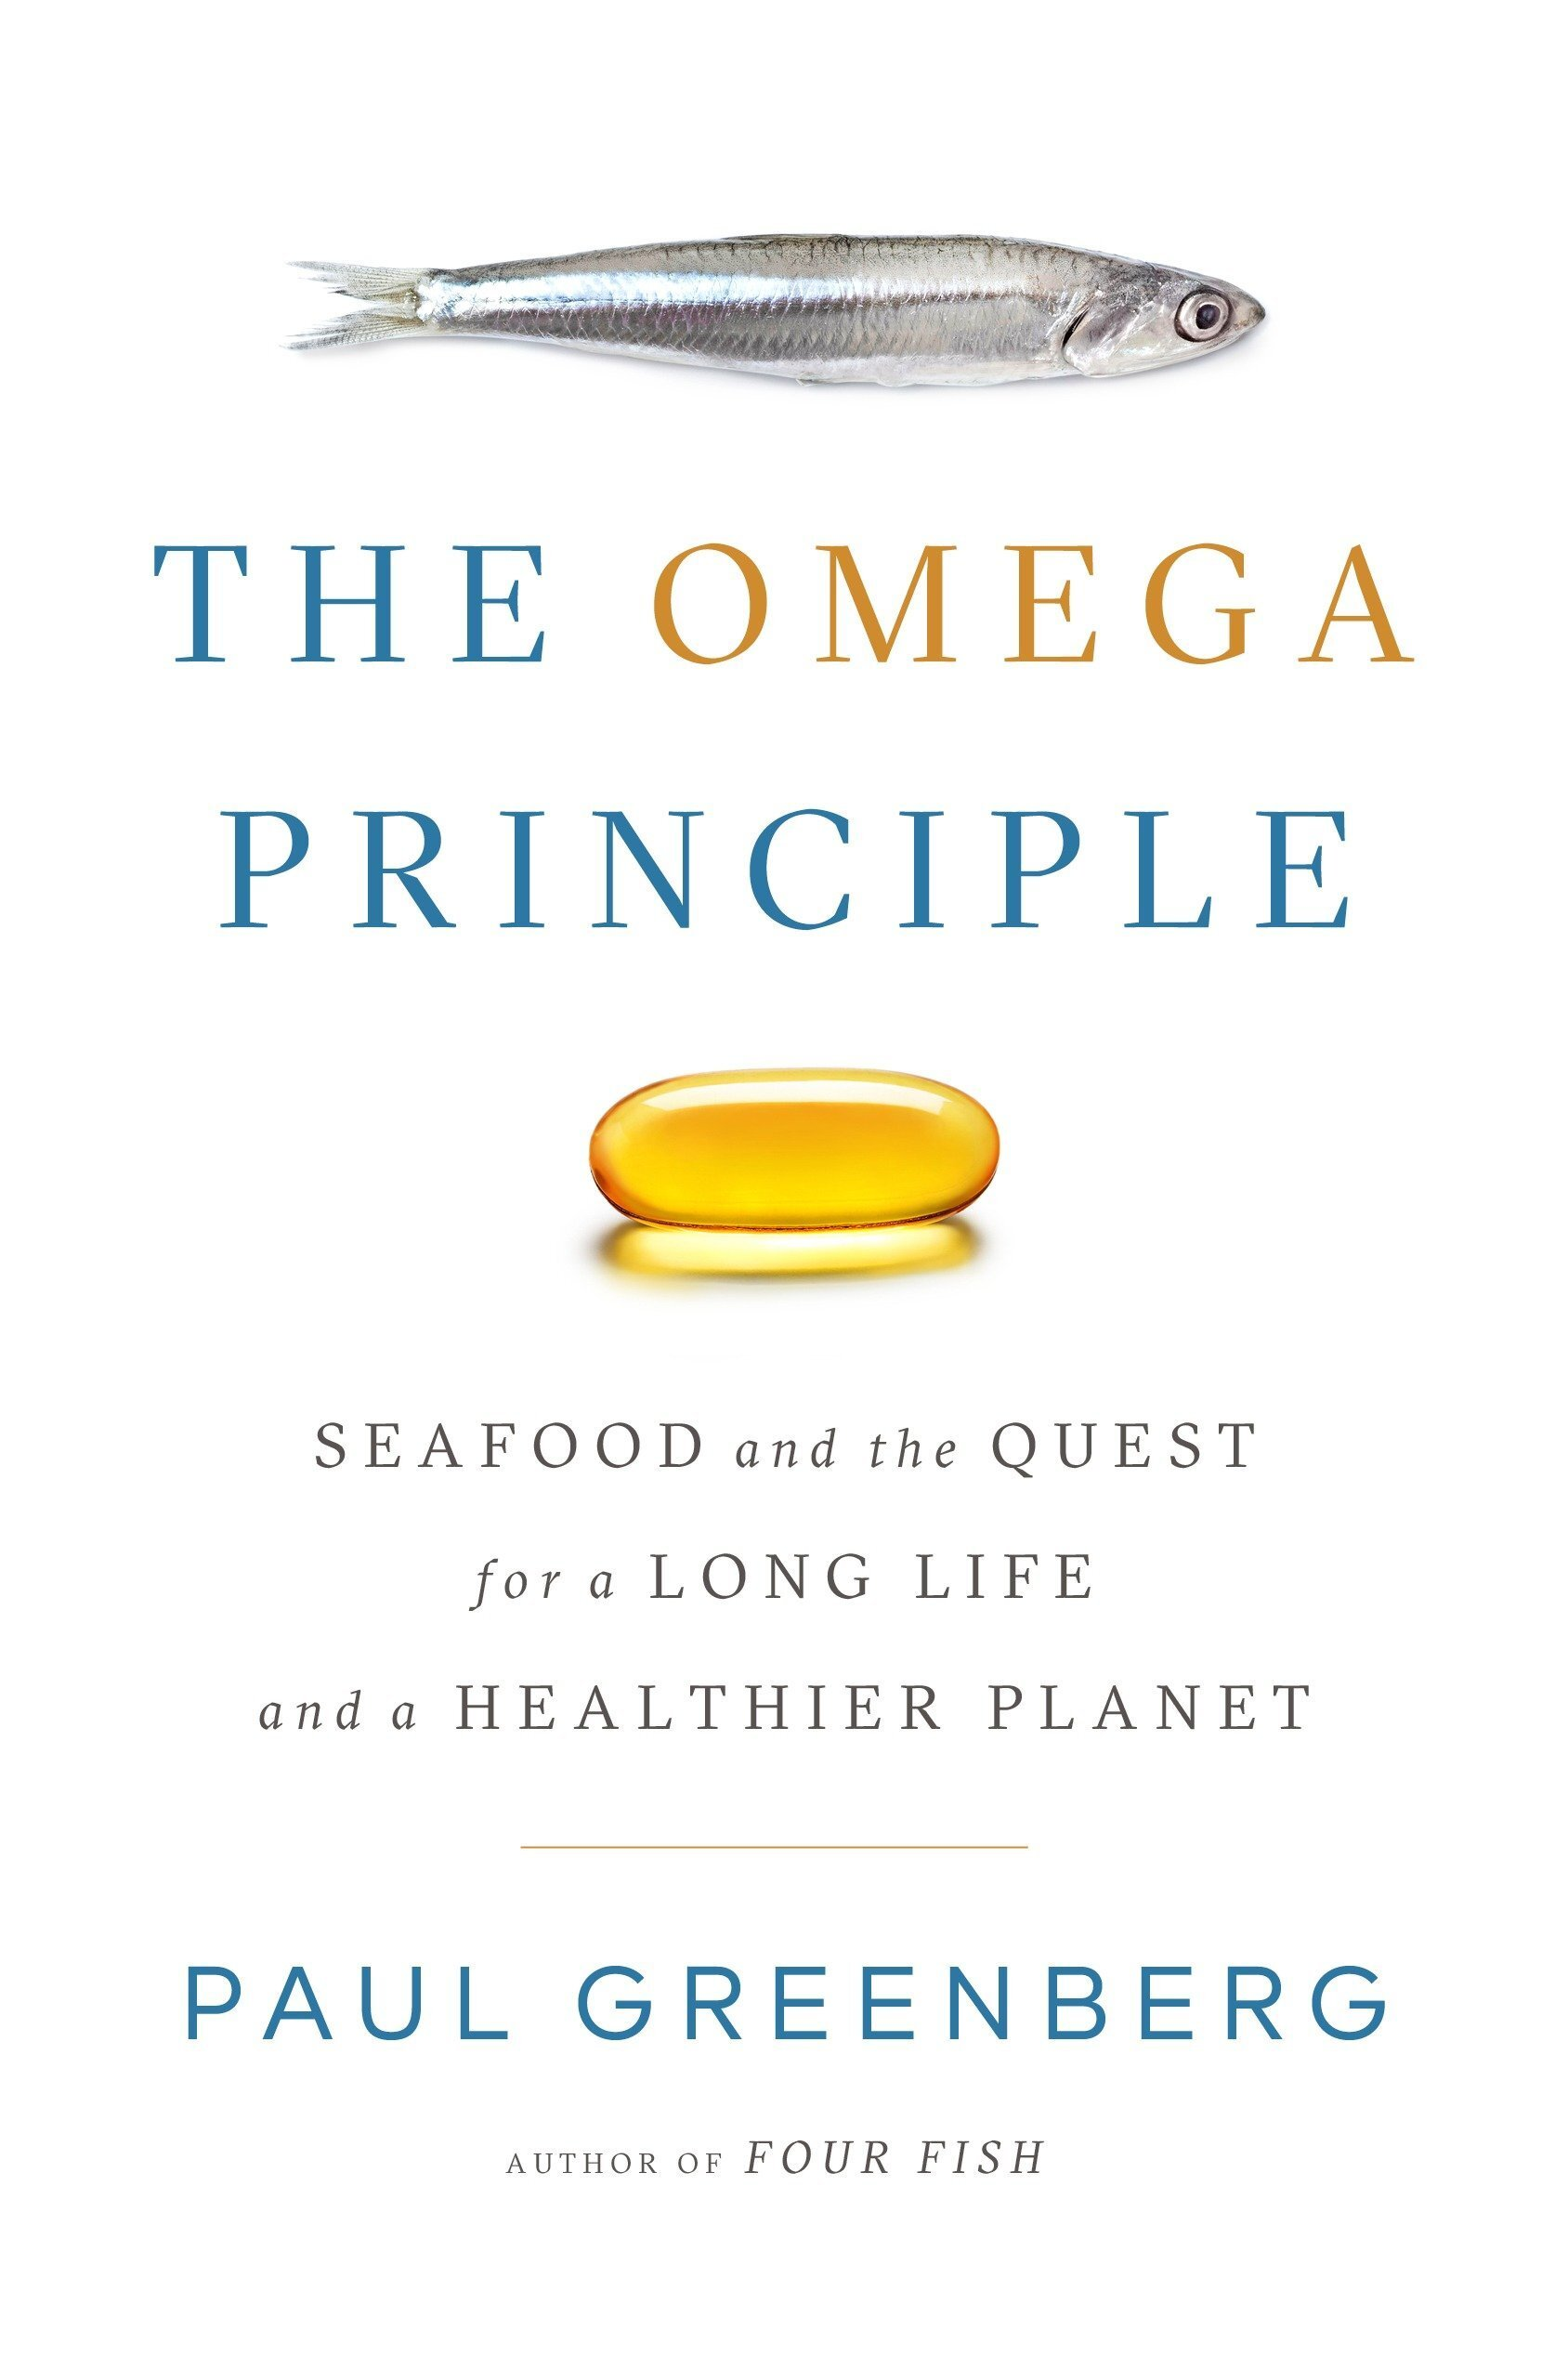 The Omega Principle by Paul Greenberg.jpg